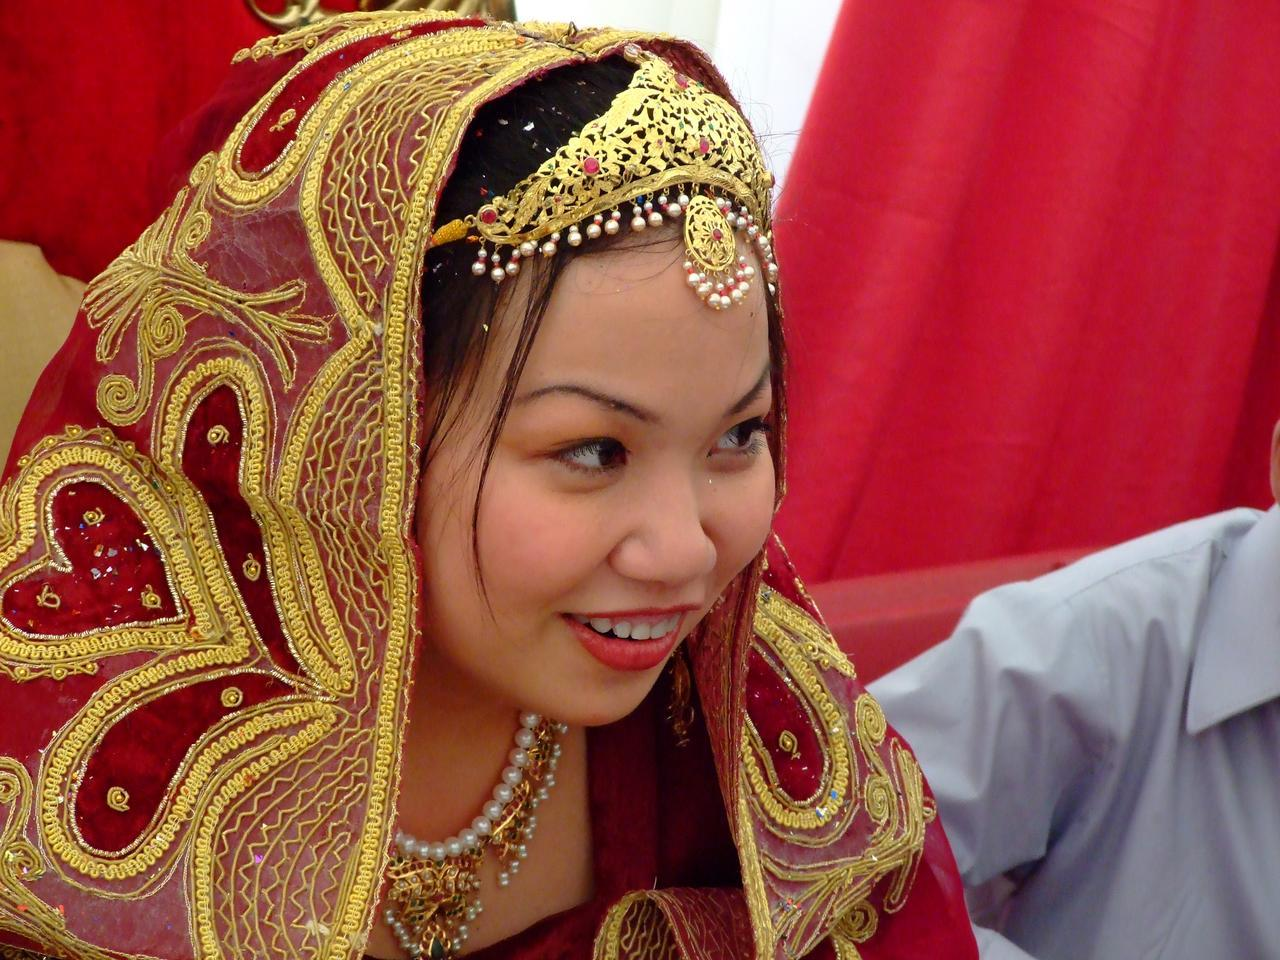 Arab marriage culture and traditions of thailand